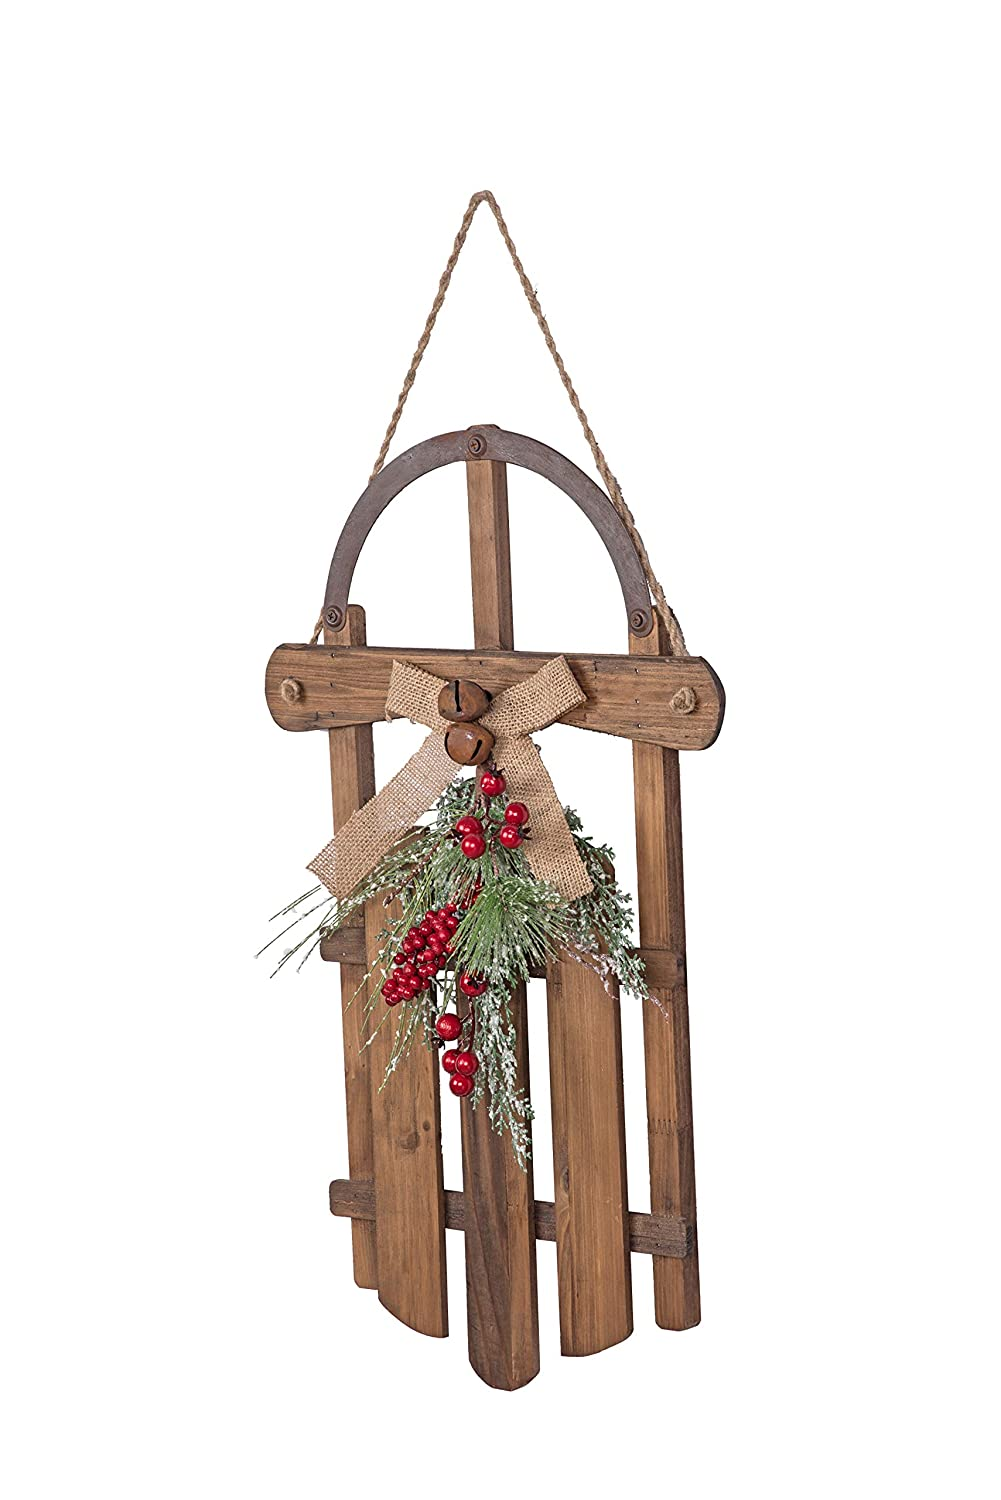 Transpac Imports D1540 Large Wooden Sled Decor Natural